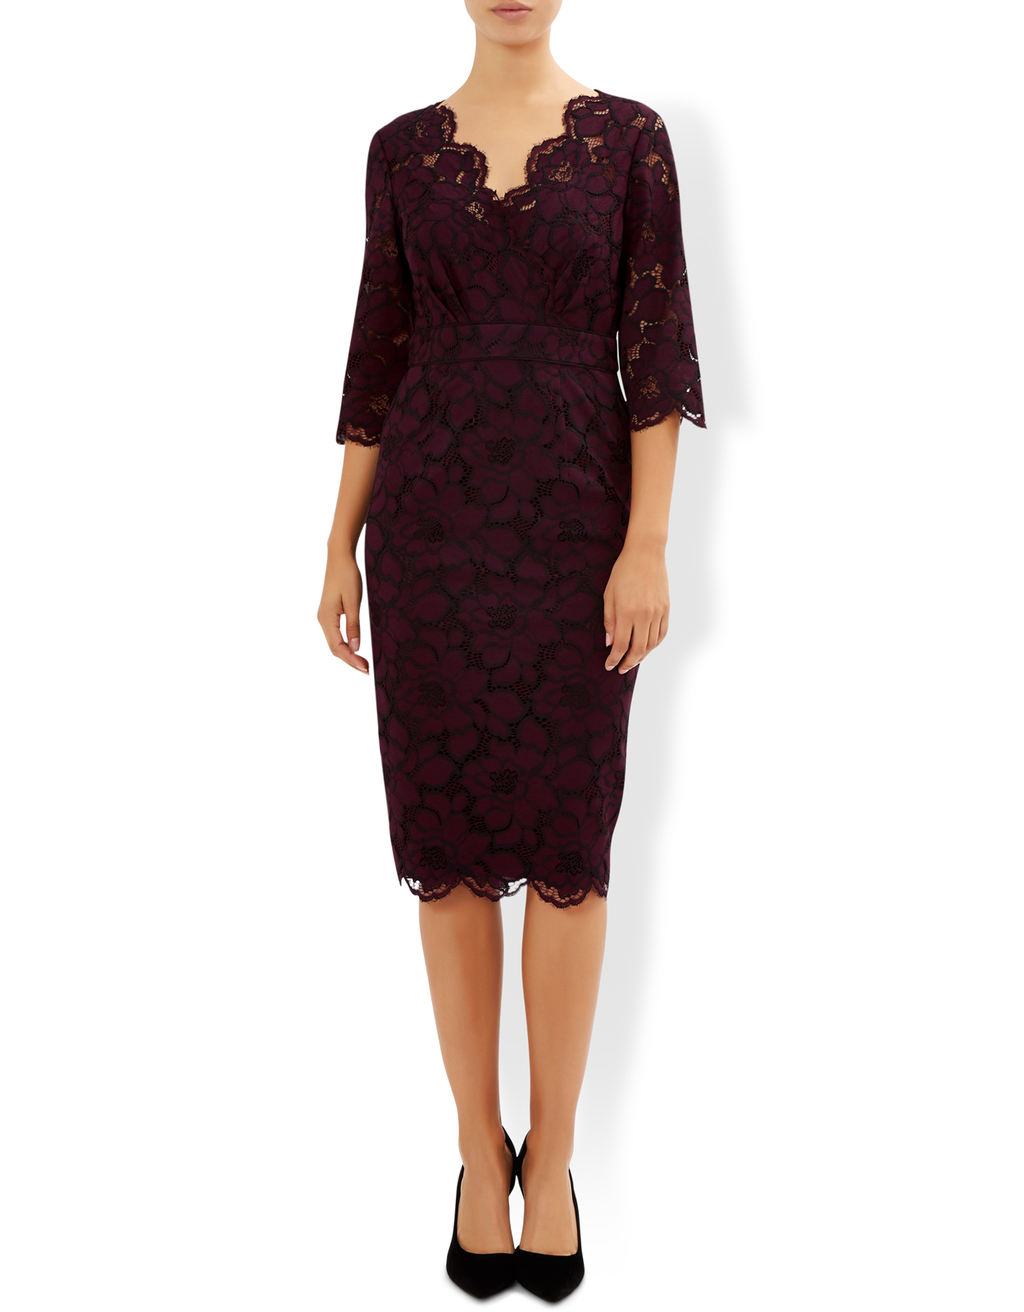 Elodie Dress - style: shift; length: below the knee; neckline: v-neck; fit: tailored/fitted; pattern: plain; predominant colour: burgundy; occasions: evening, occasion; fibres: polyester/polyamide - stretch; sleeve length: half sleeve; sleeve style: standard; texture group: lace; pattern type: fabric; pattern size: standard; season: a/w 2016; wardrobe: event